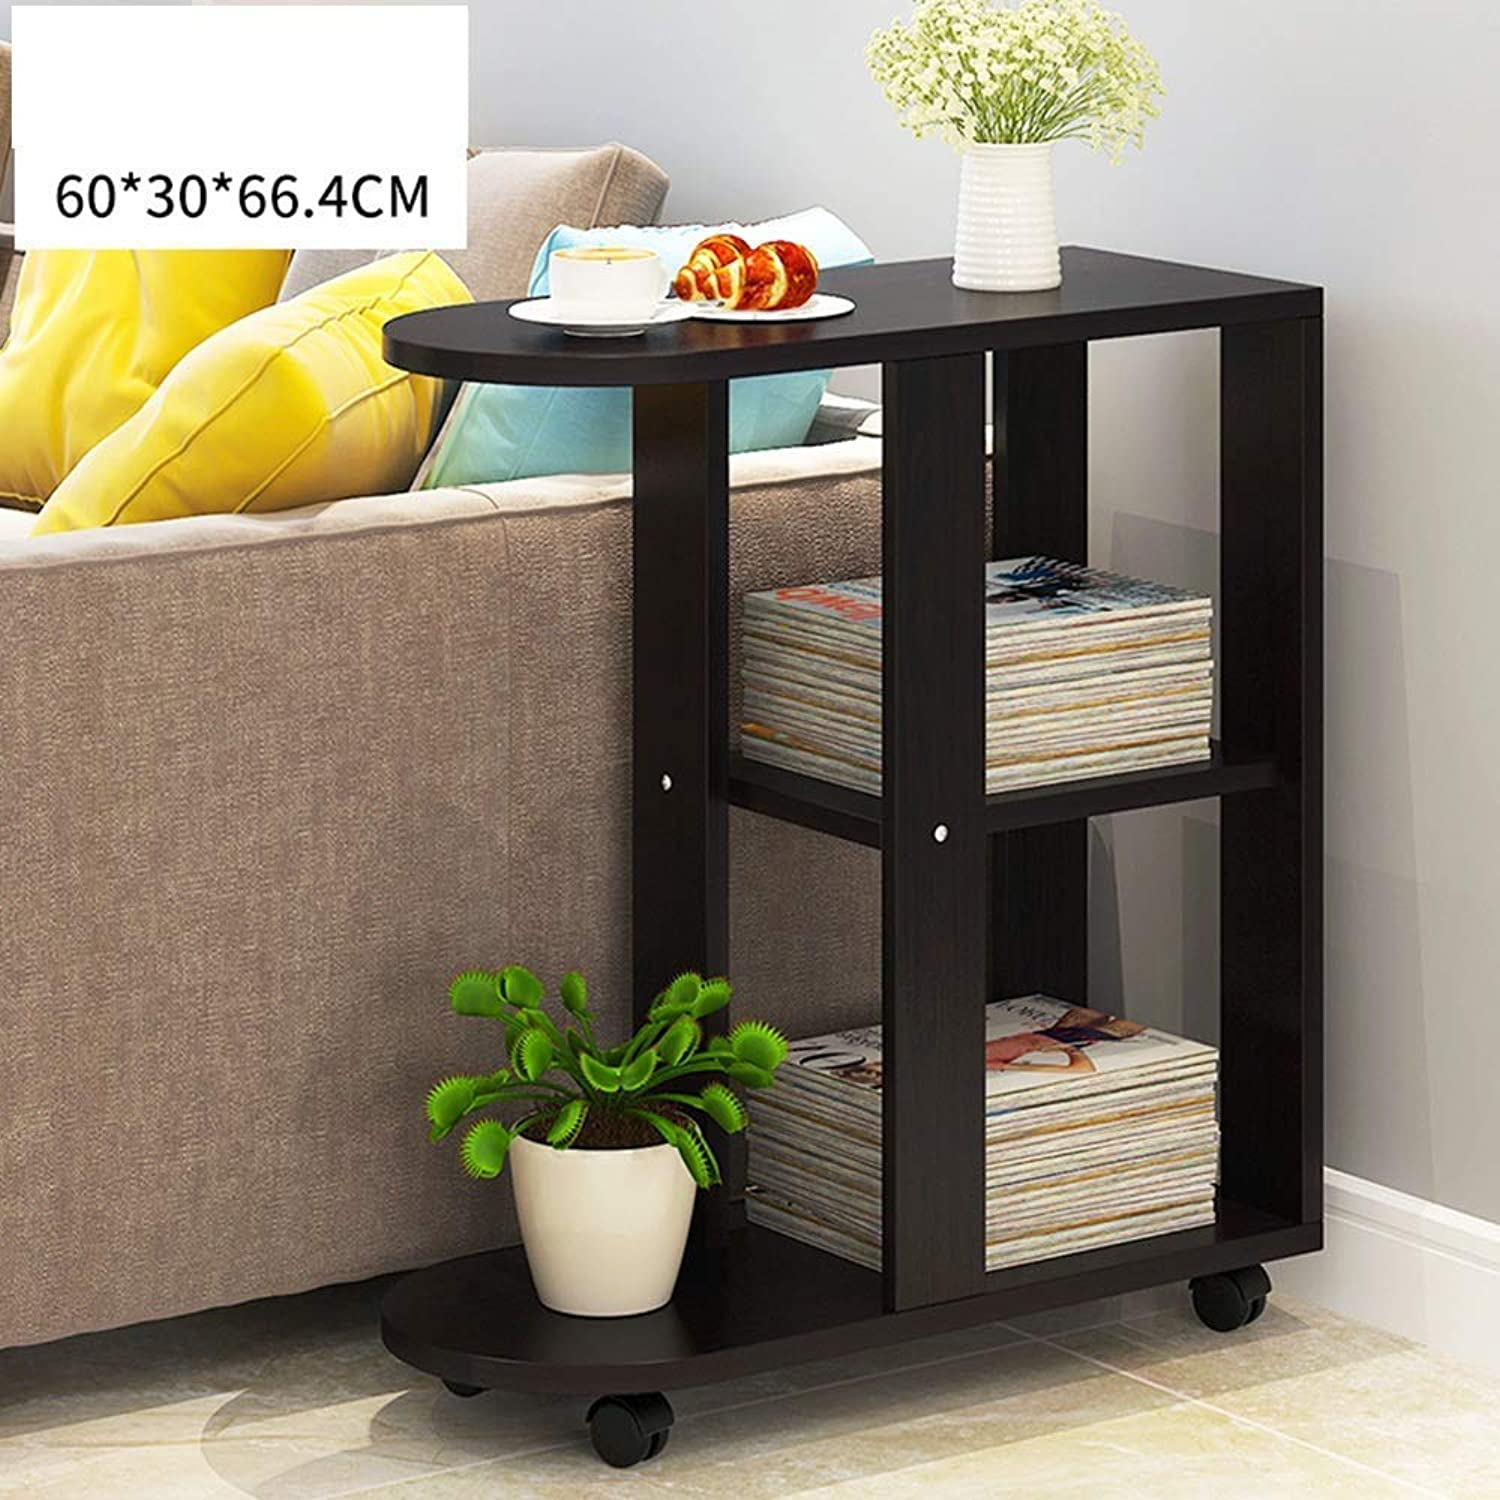 YZZY Side Table Small Coffee Table Sofa Side Cabinet Living Room Bedroom Bedside Table Removable Table Desk Modern Minimalist (color   Black)